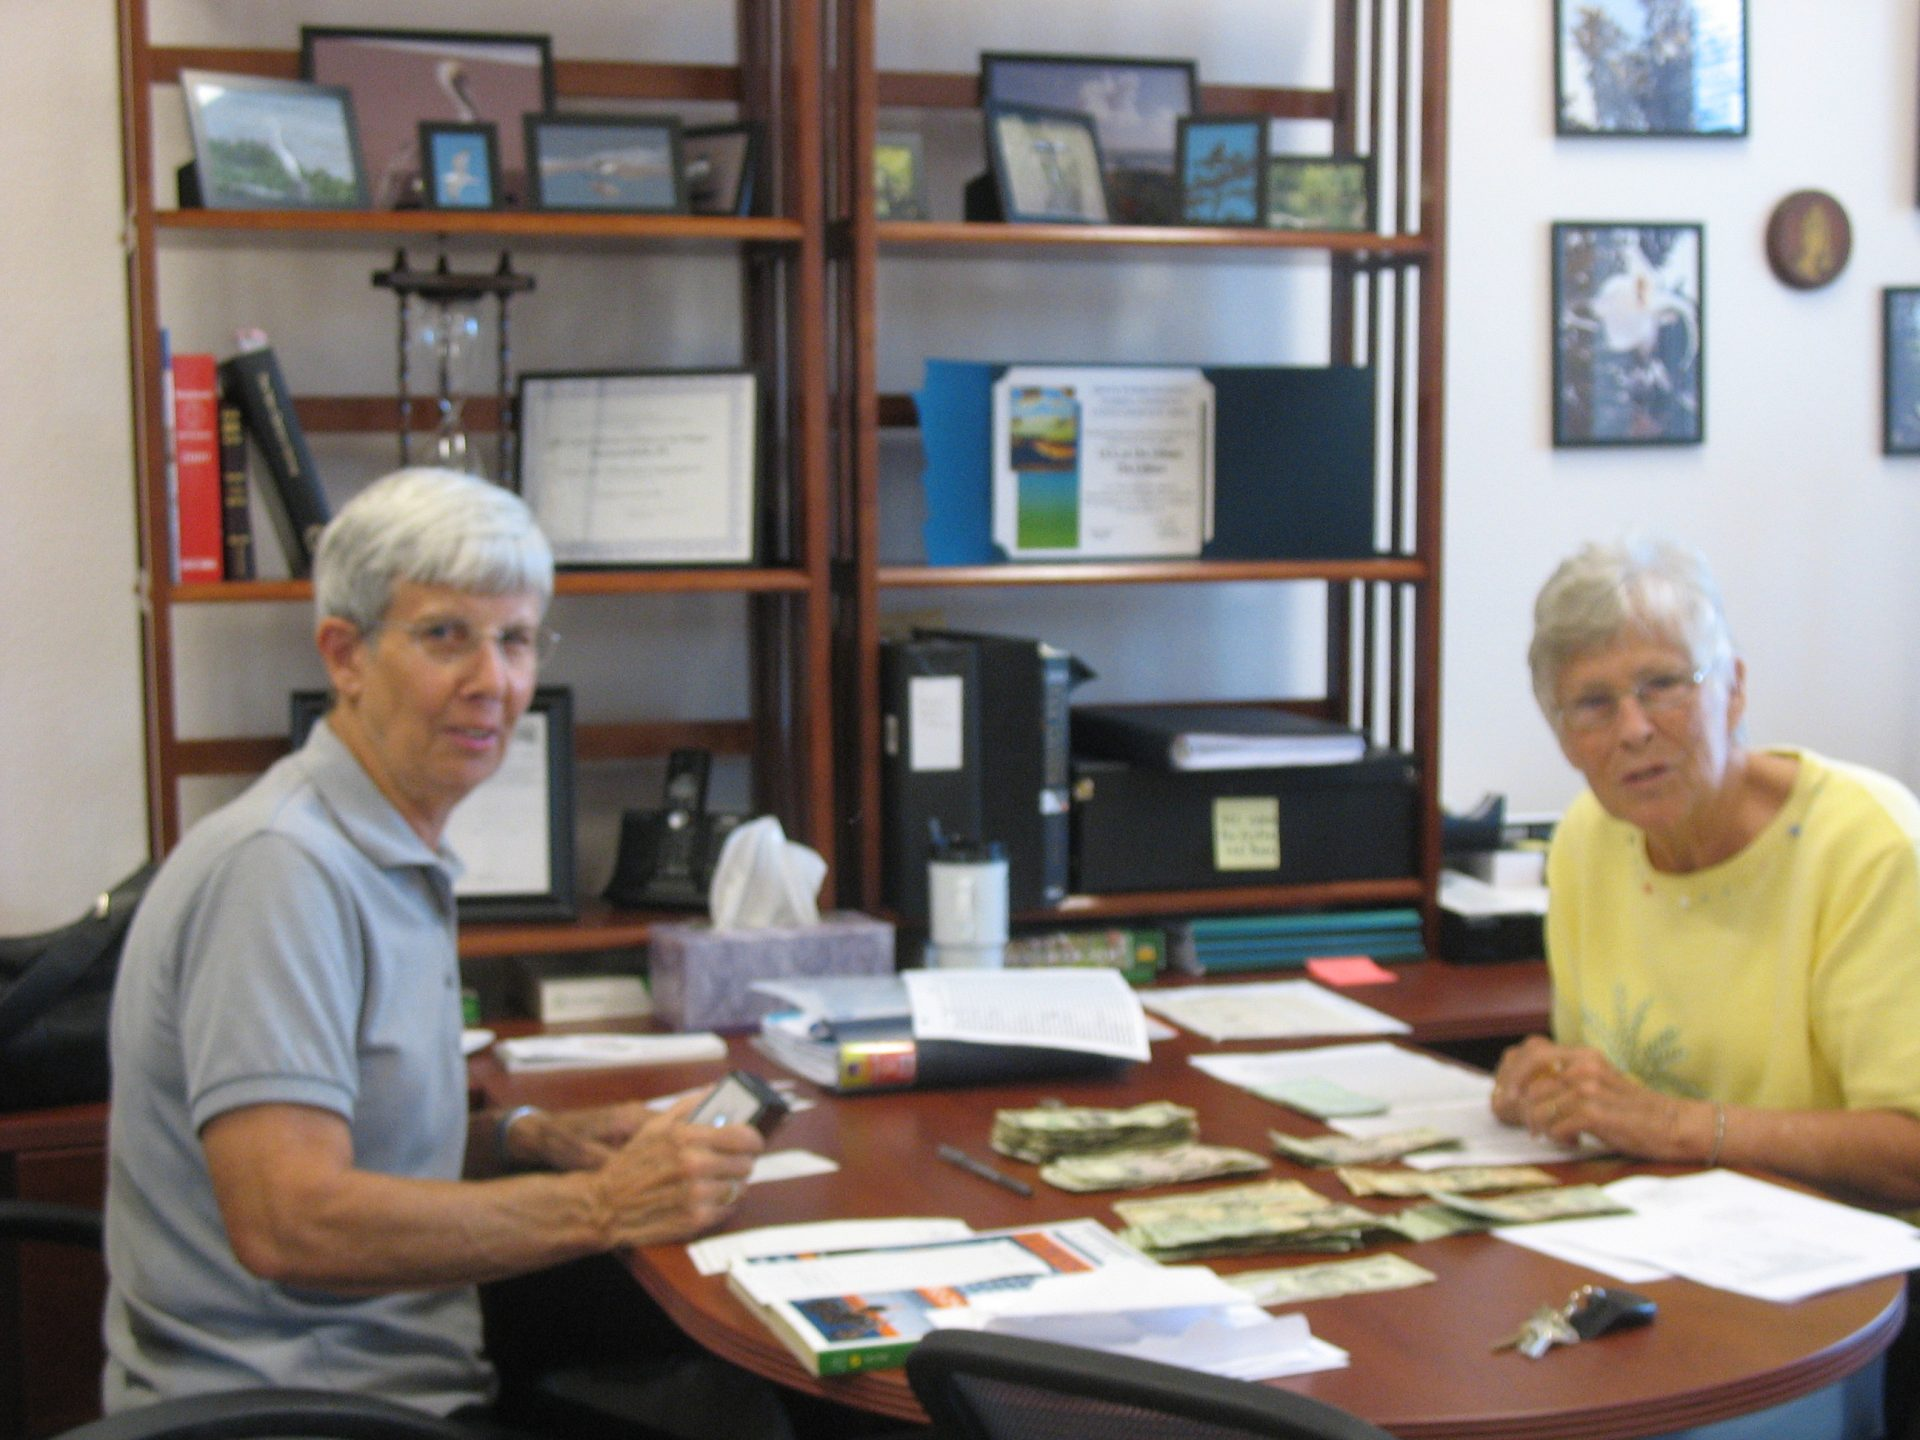 Pat and Nancy working in the church office